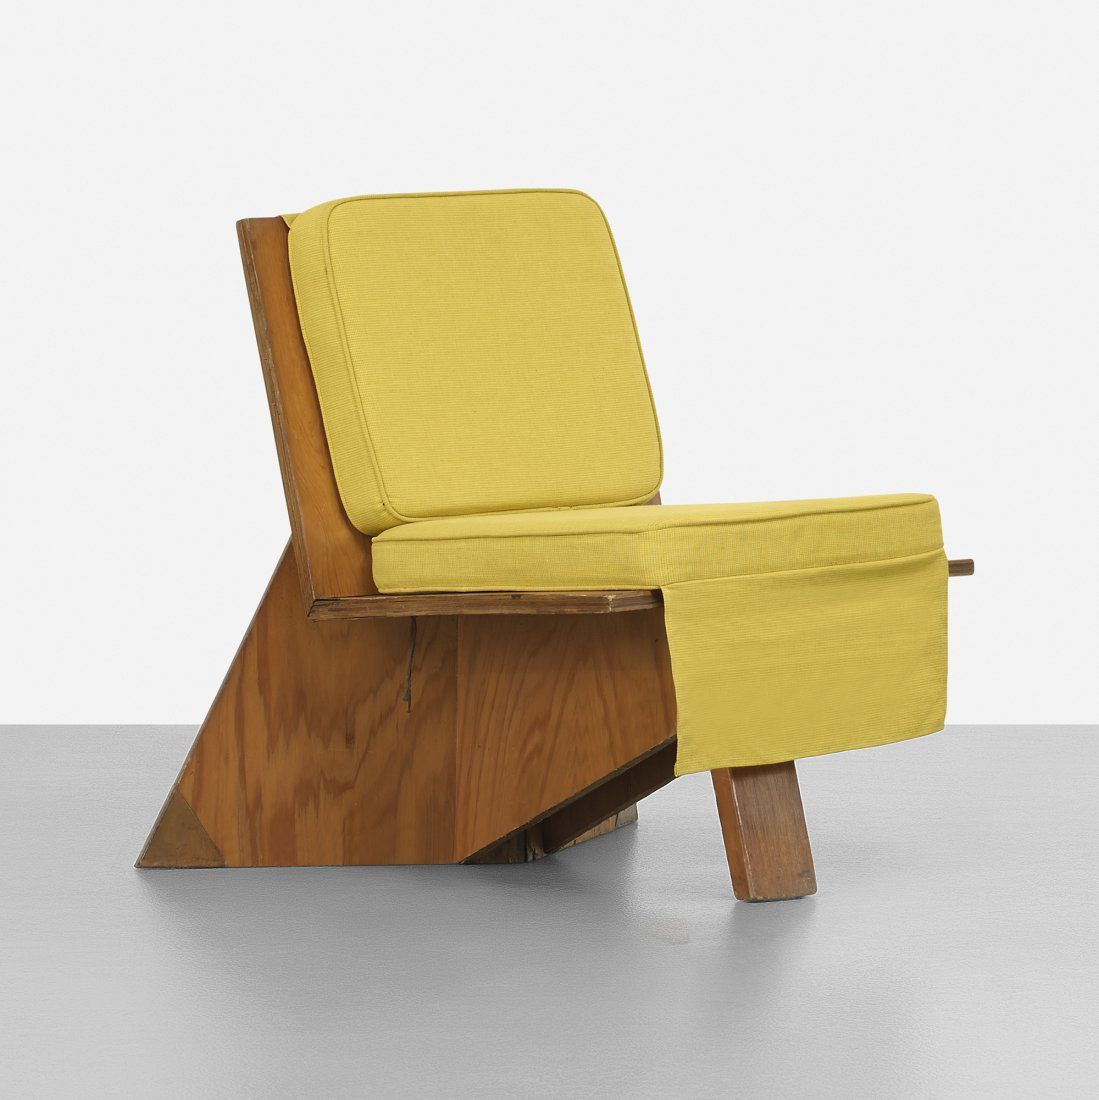 Peachy Frank Lloyd Wright Lounge Chair On Chaired Lloyd Wright Theyellowbook Wood Chair Design Ideas Theyellowbookinfo